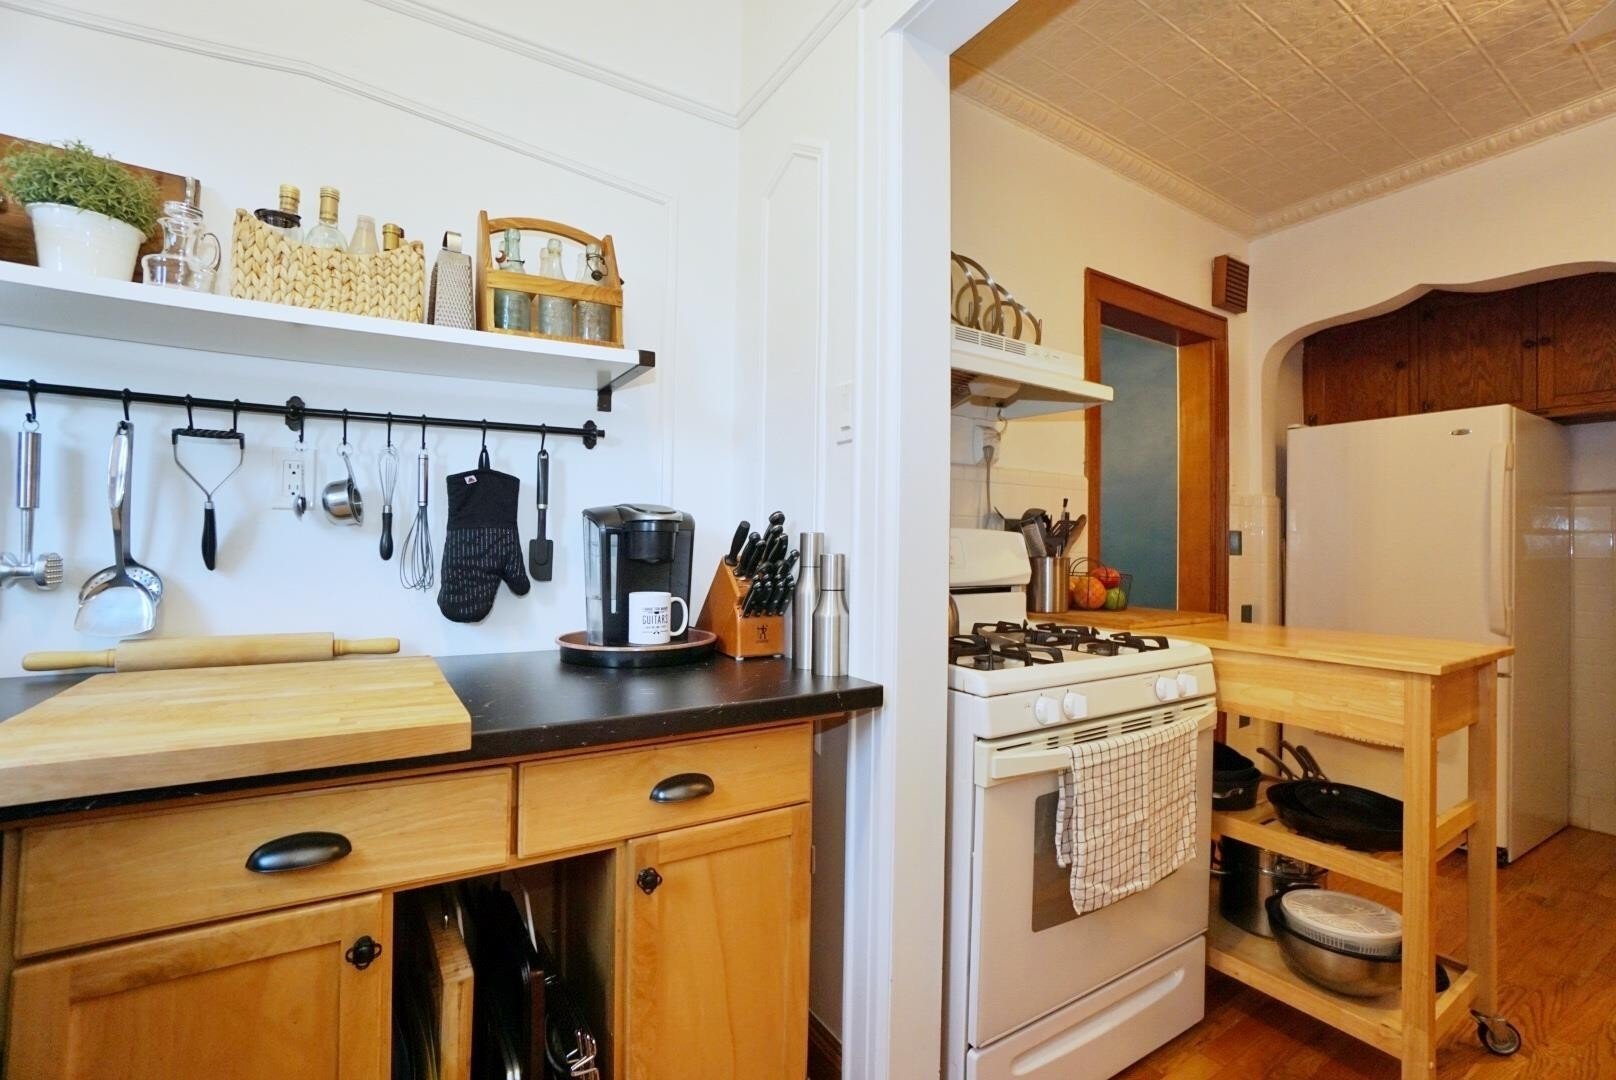 7. Single Family Townhouse for Sale at 1684 RYDER ST , TOWNHOUSE Marine Park, Brooklyn, NY 11234